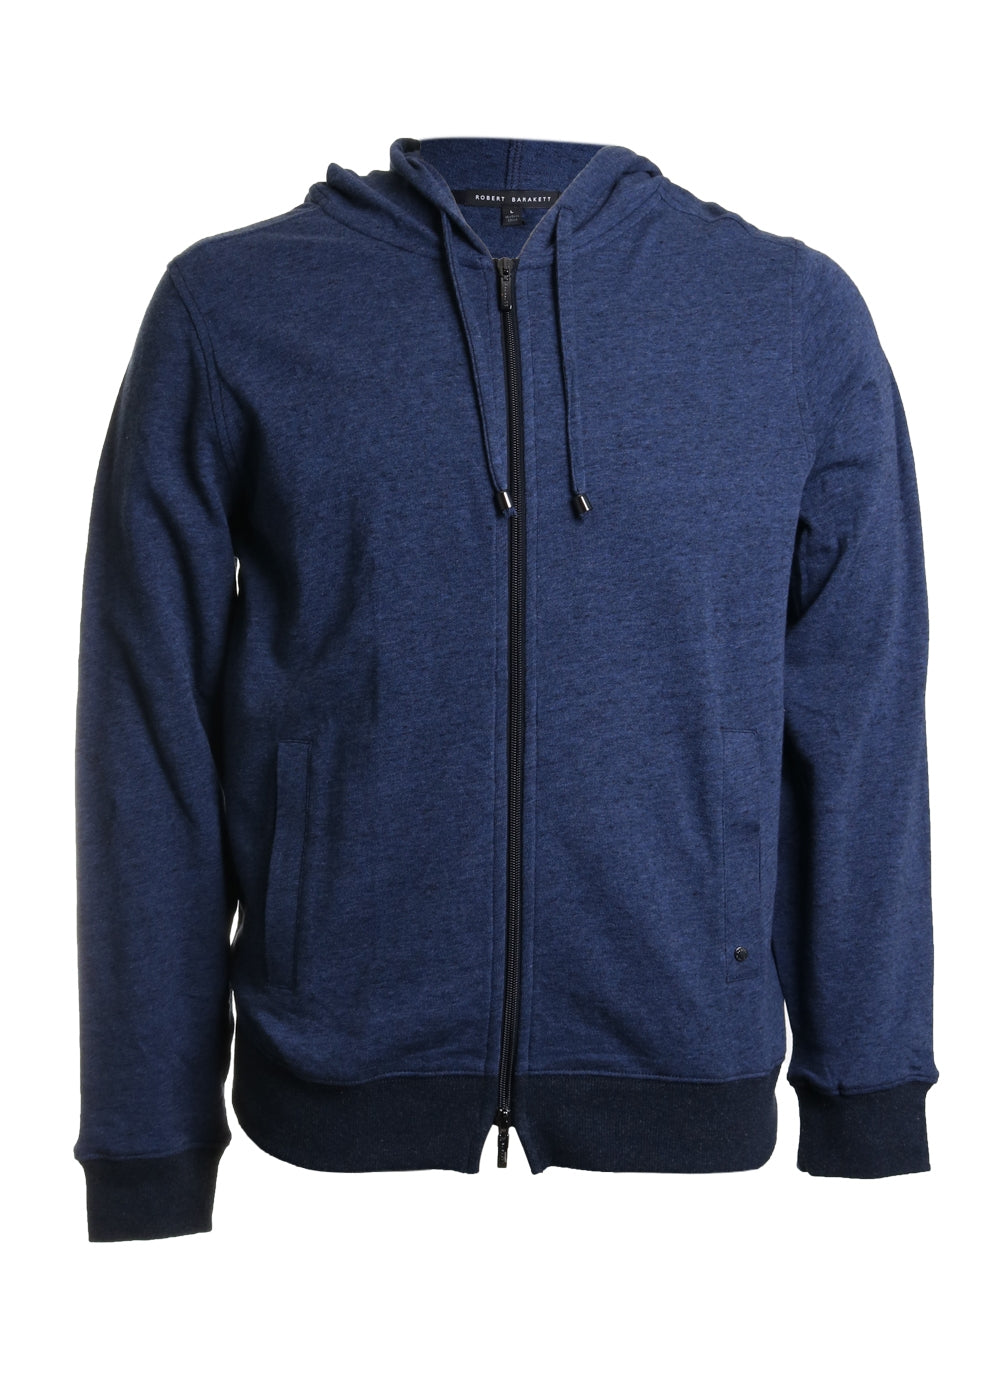 Marshall Cotton Hooded Full Zip Sweater